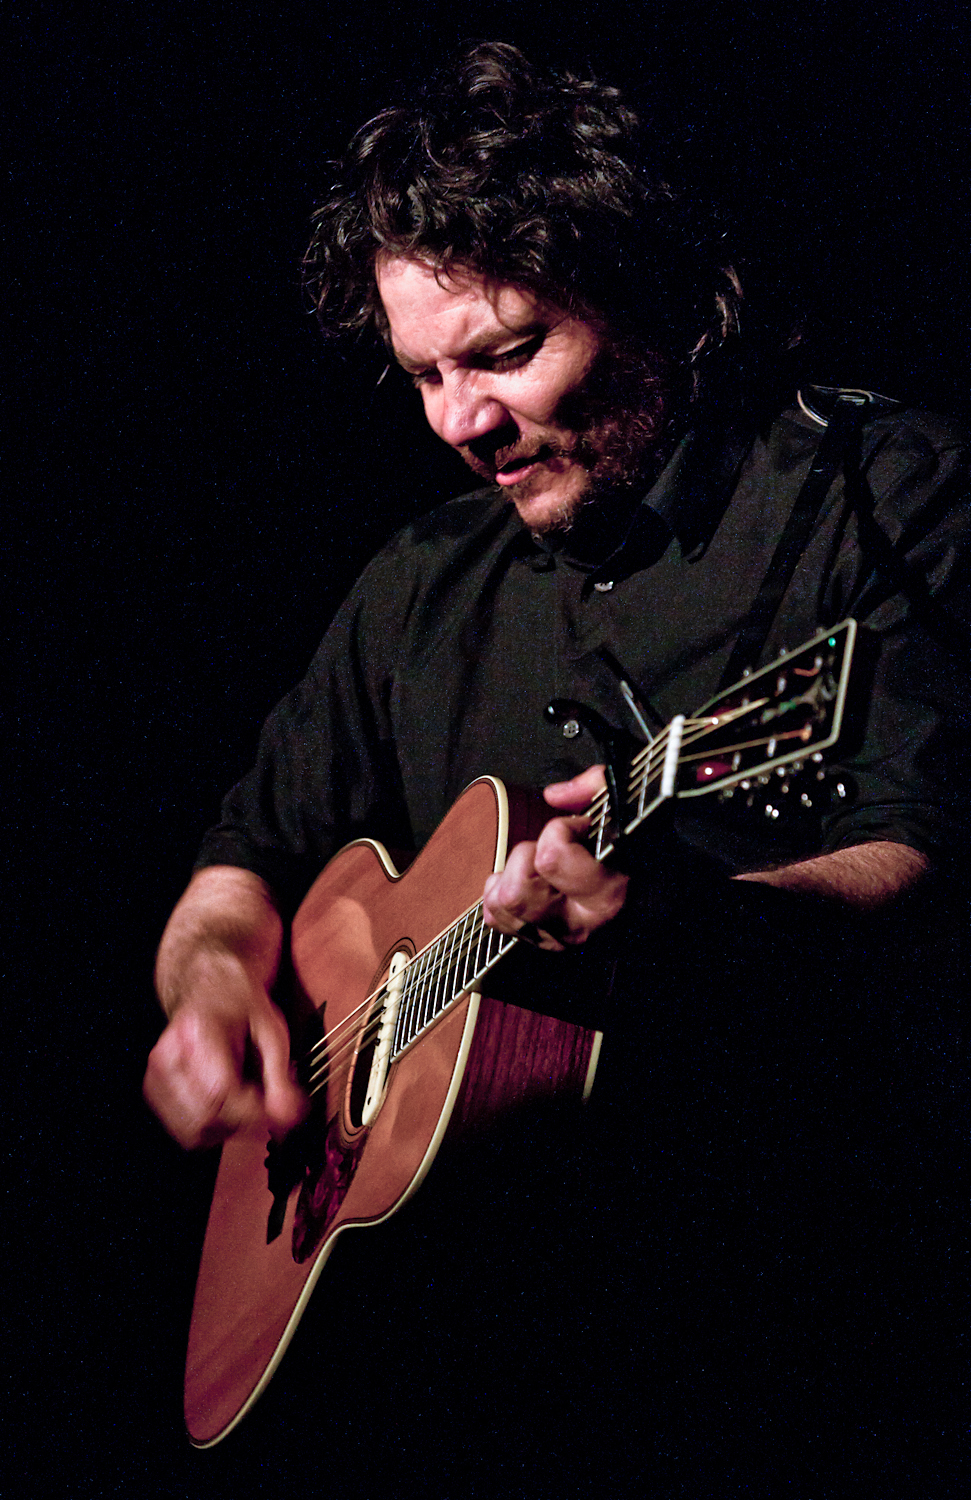 JeffTweedy_0588_11x17.jpg